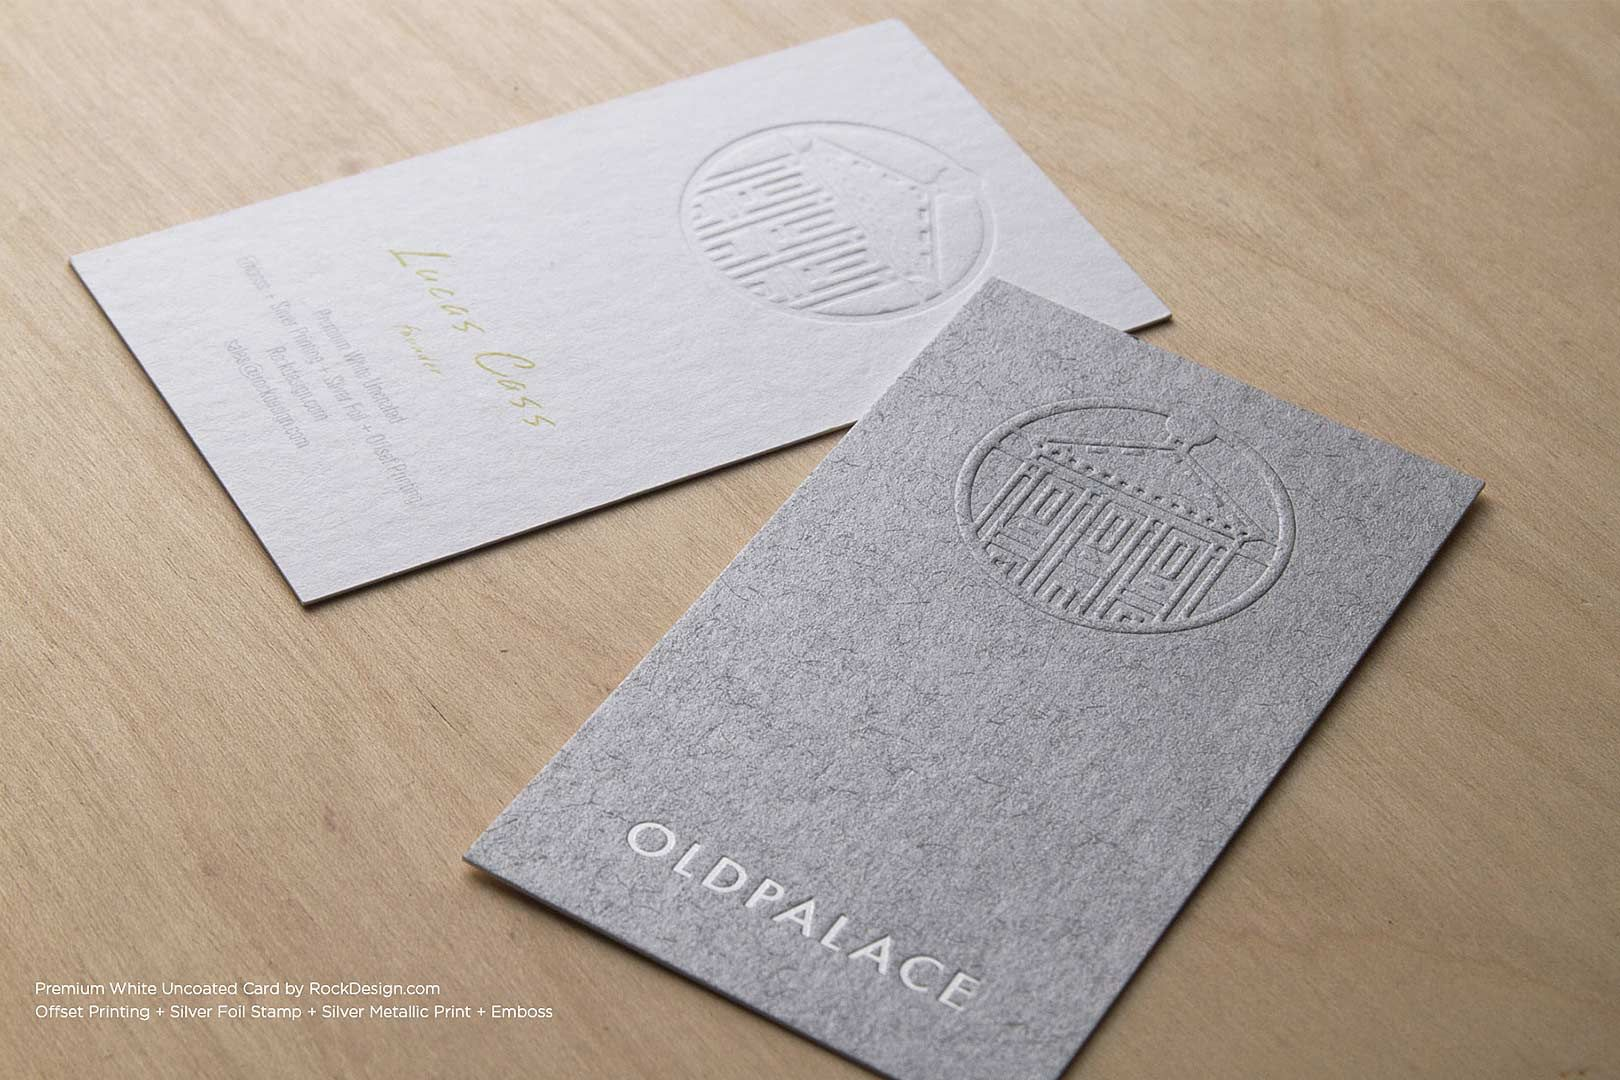 Premium uncoated business cards rockdesign luxury business card premium uncoated business cards rockdesign luxury business card printing reheart Image collections